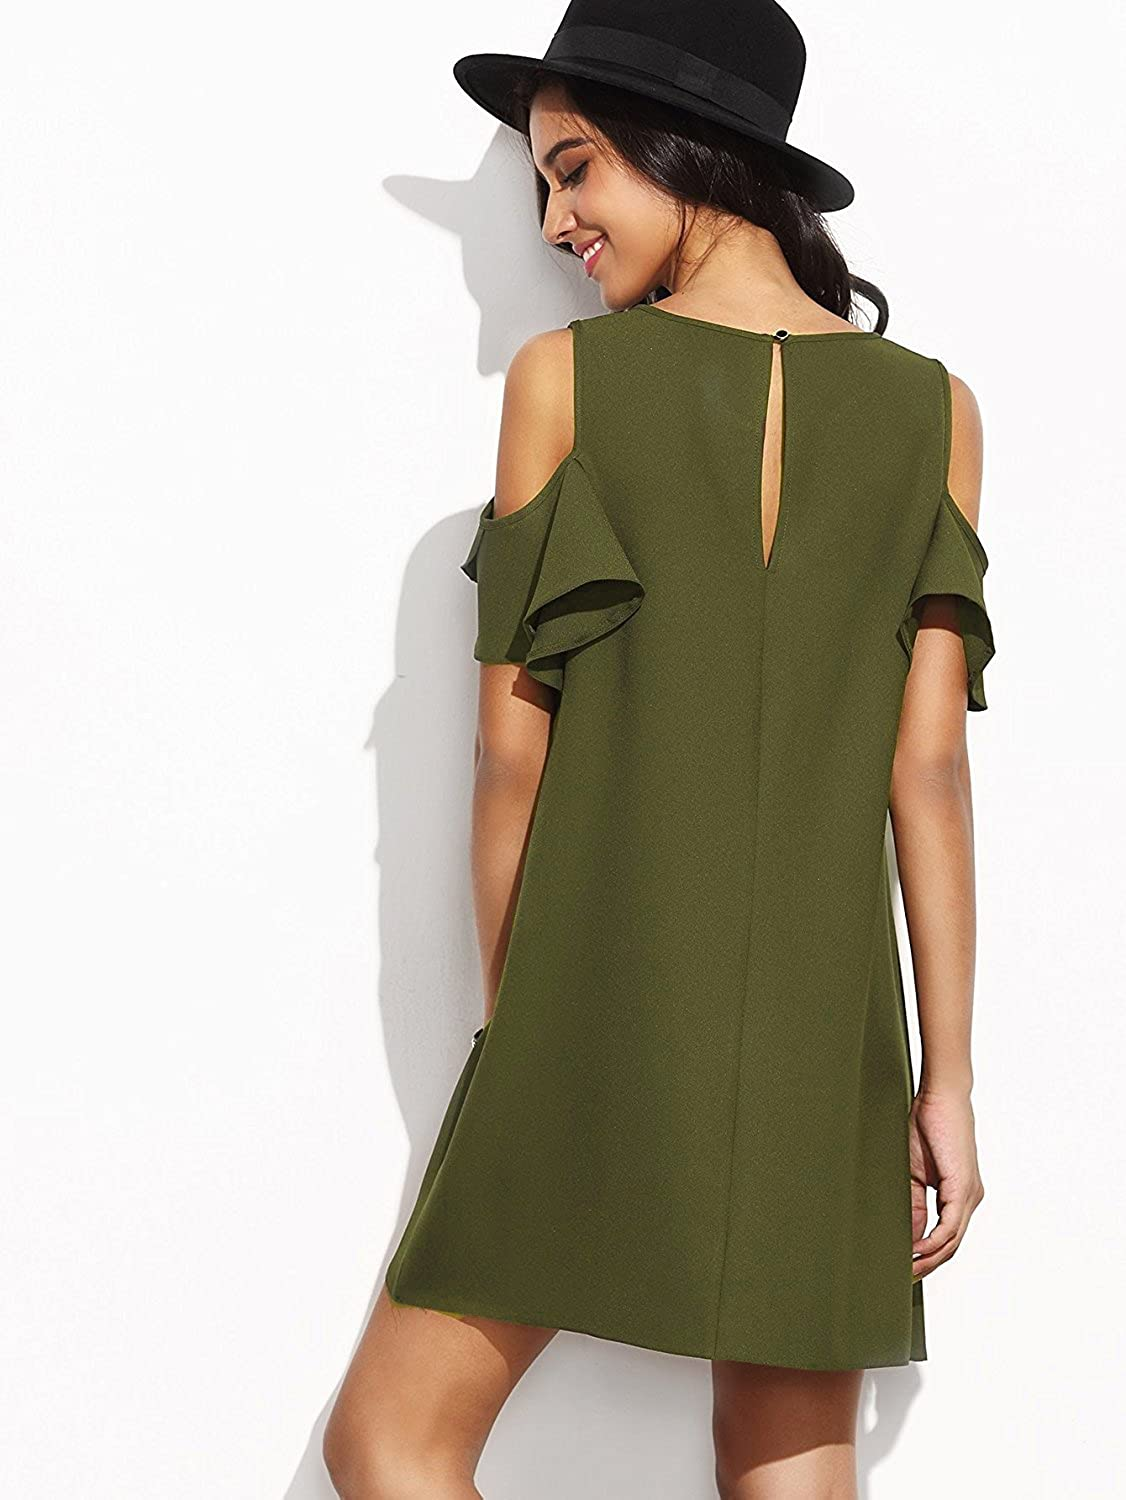 c5ed0bee856 Milumia Women s Summer Cold Shoulder Ruffle Sleeves Shift Dress at Amazon  Women s Clothing store